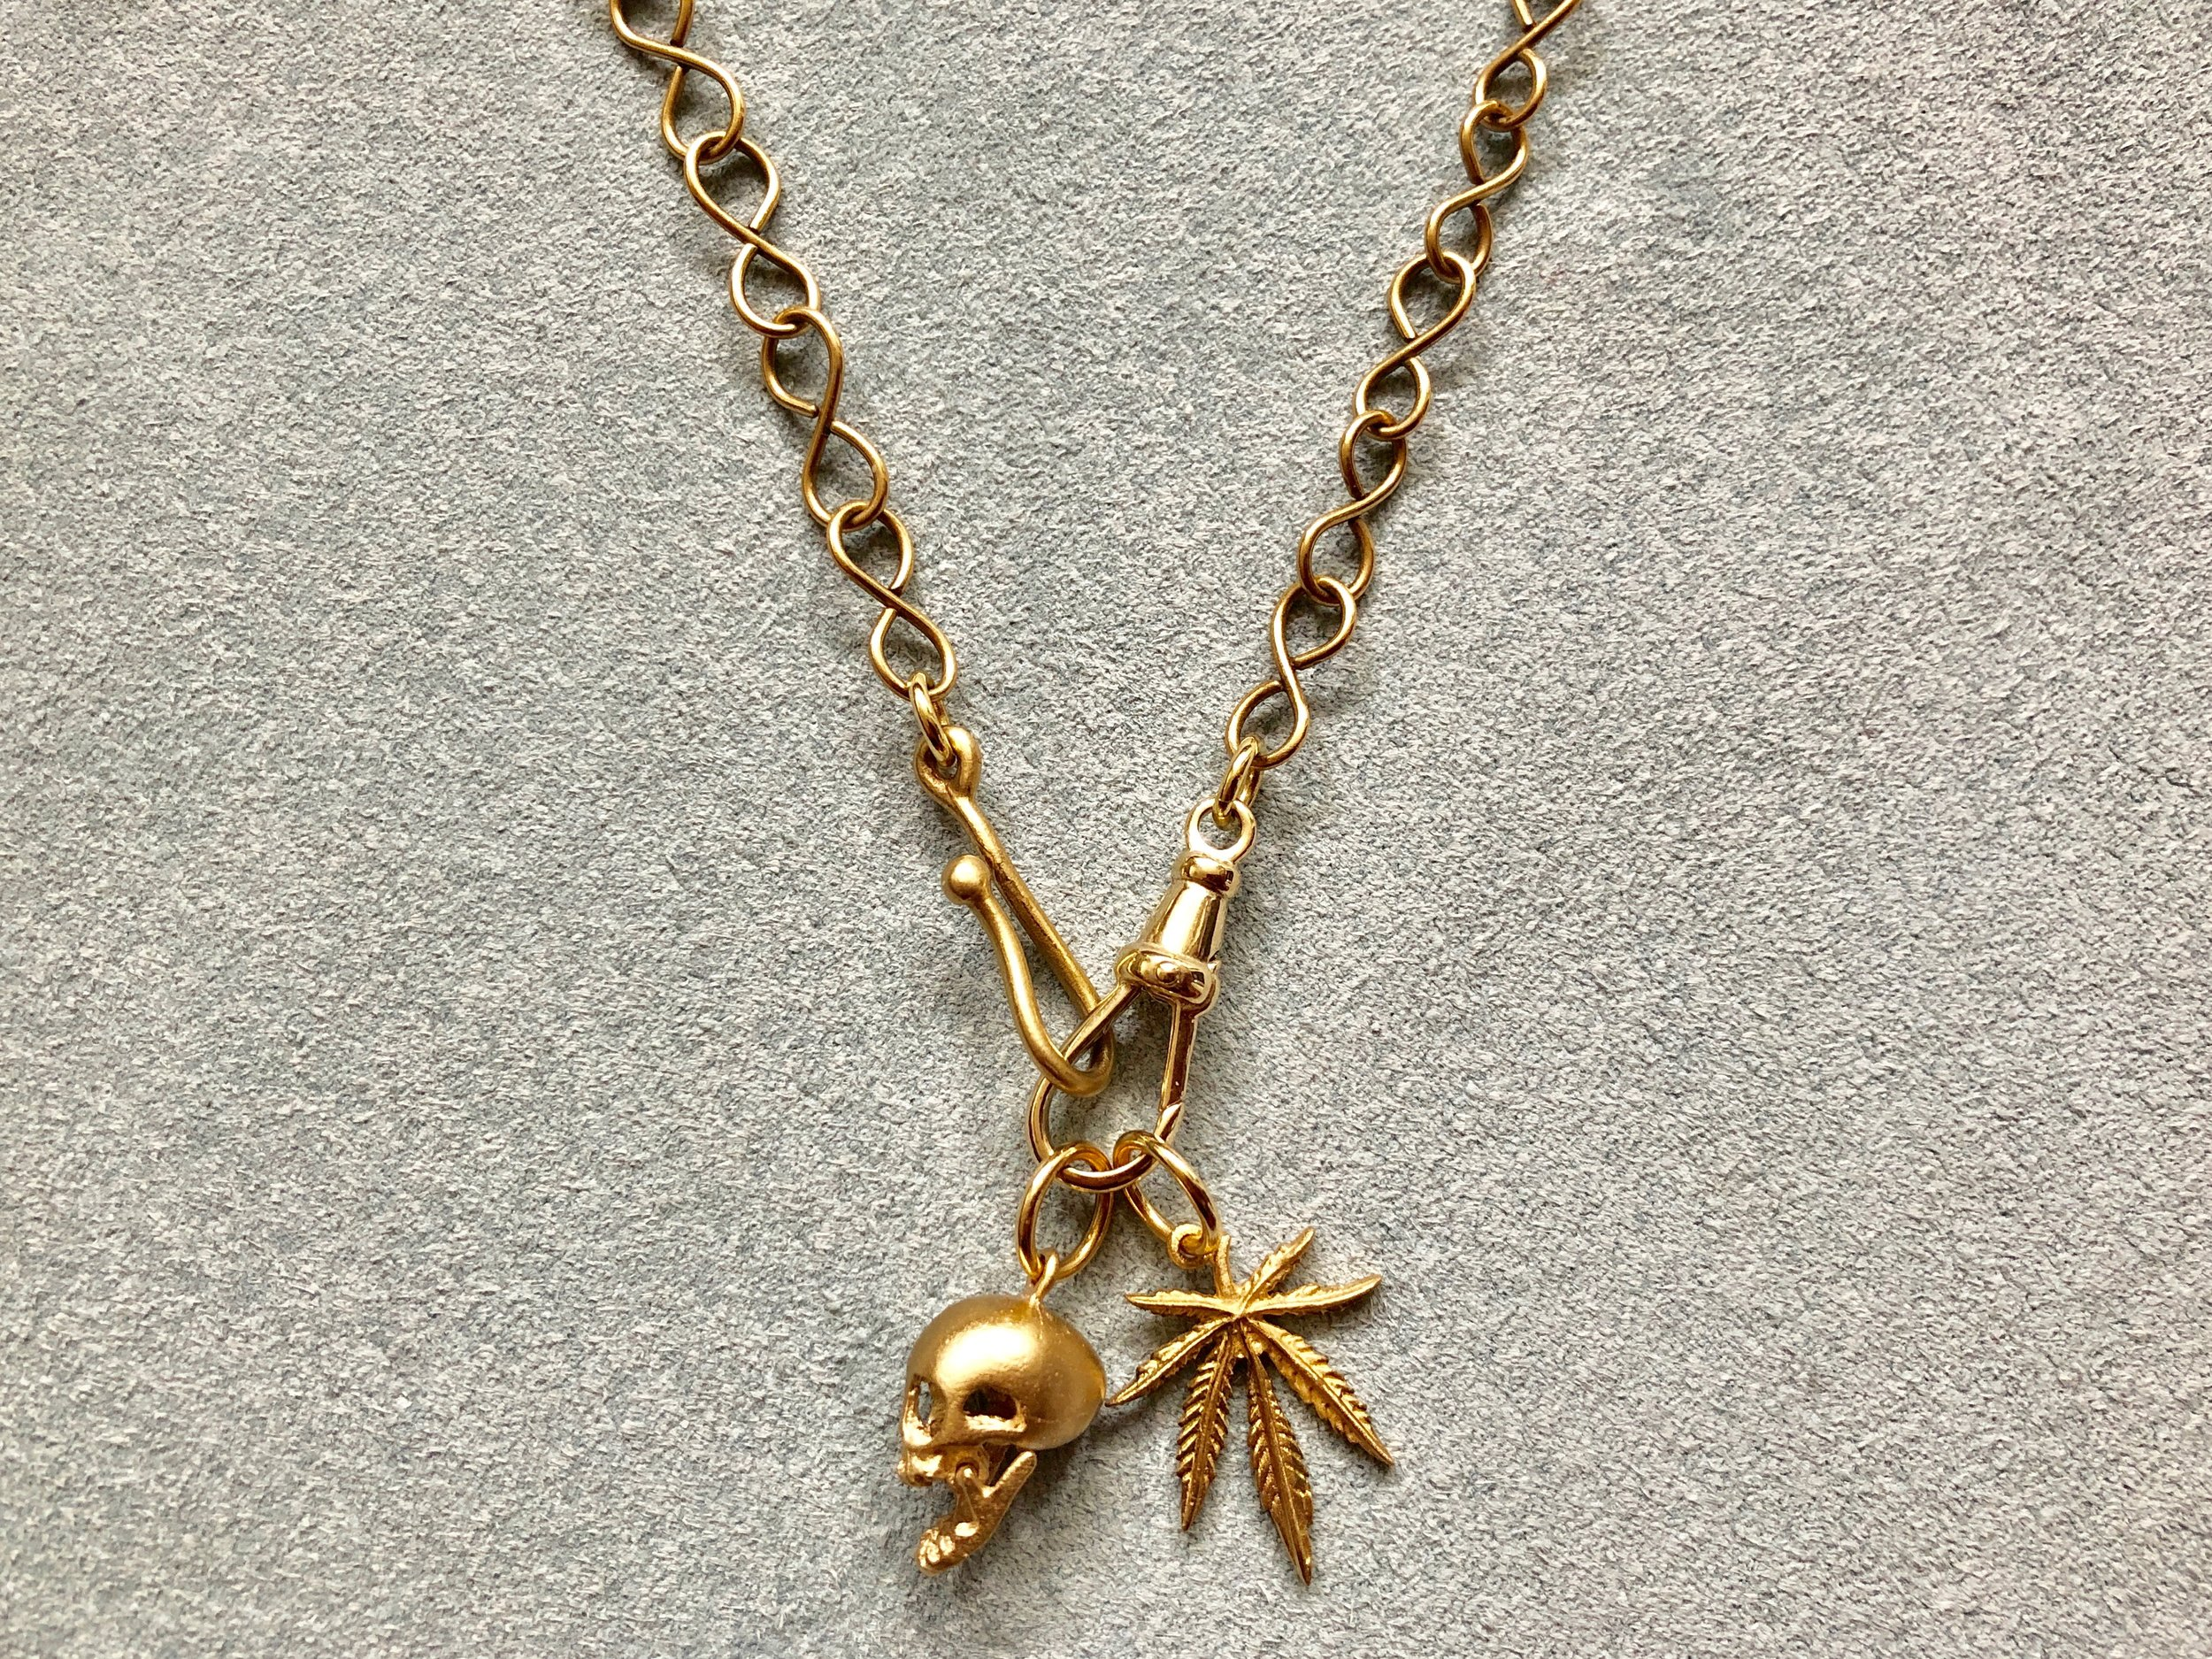 INFINITY CHAIN WITH ARTICULATED SKULL PENDANT AND MARY JANE LEAF